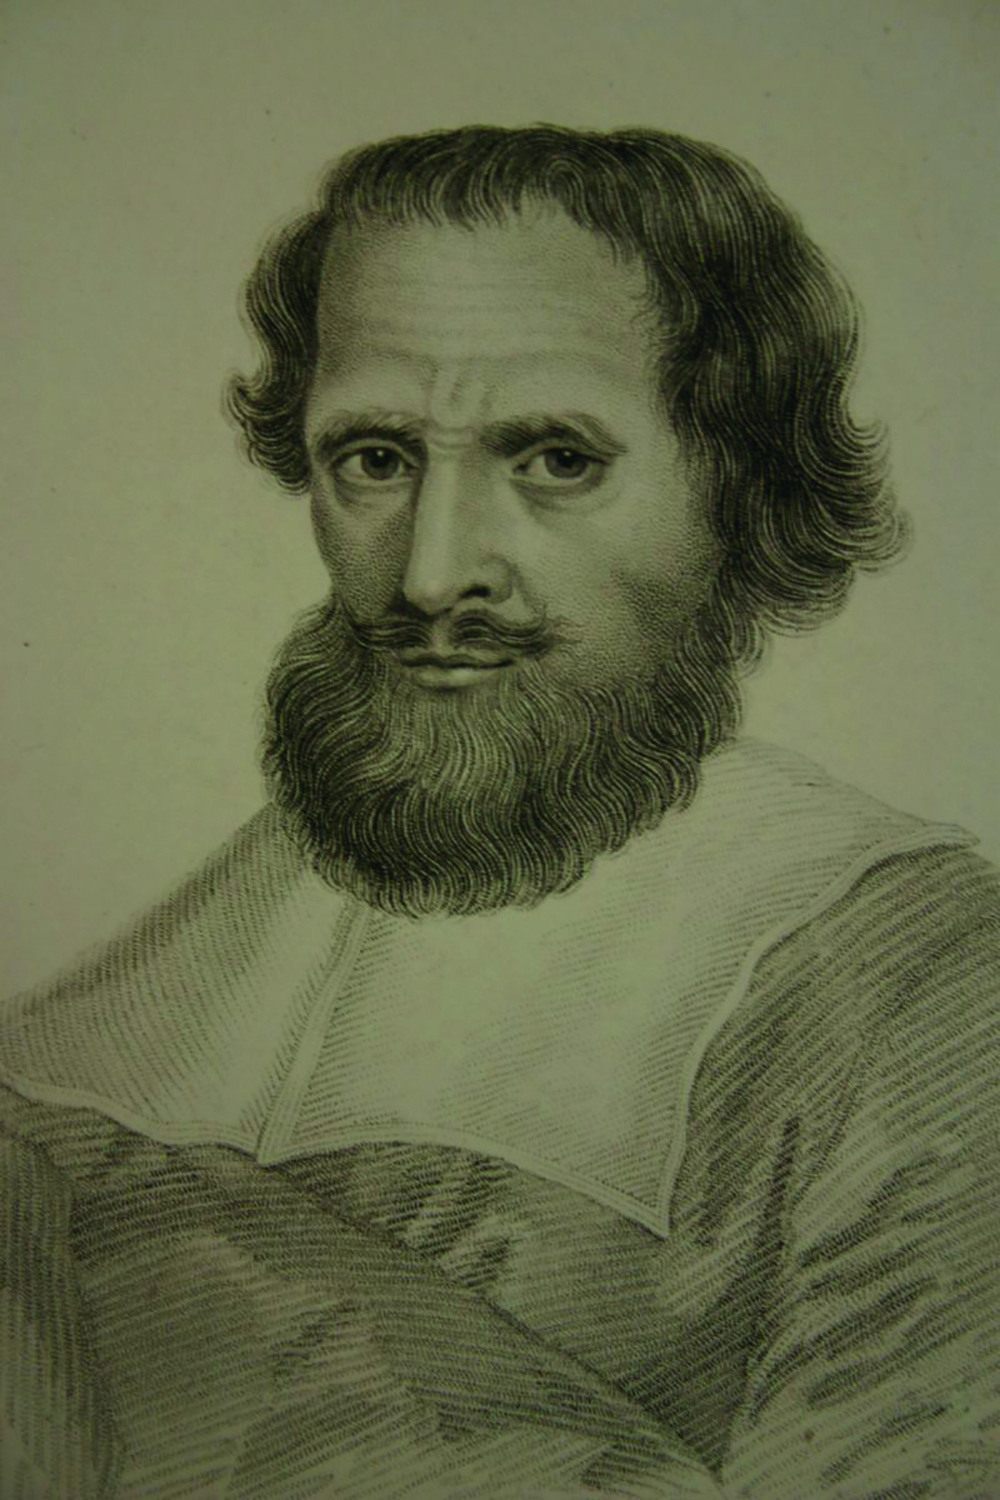 Drawing of a man with thick hair and bushy beard, wearing traditional male Elizabethan dress.